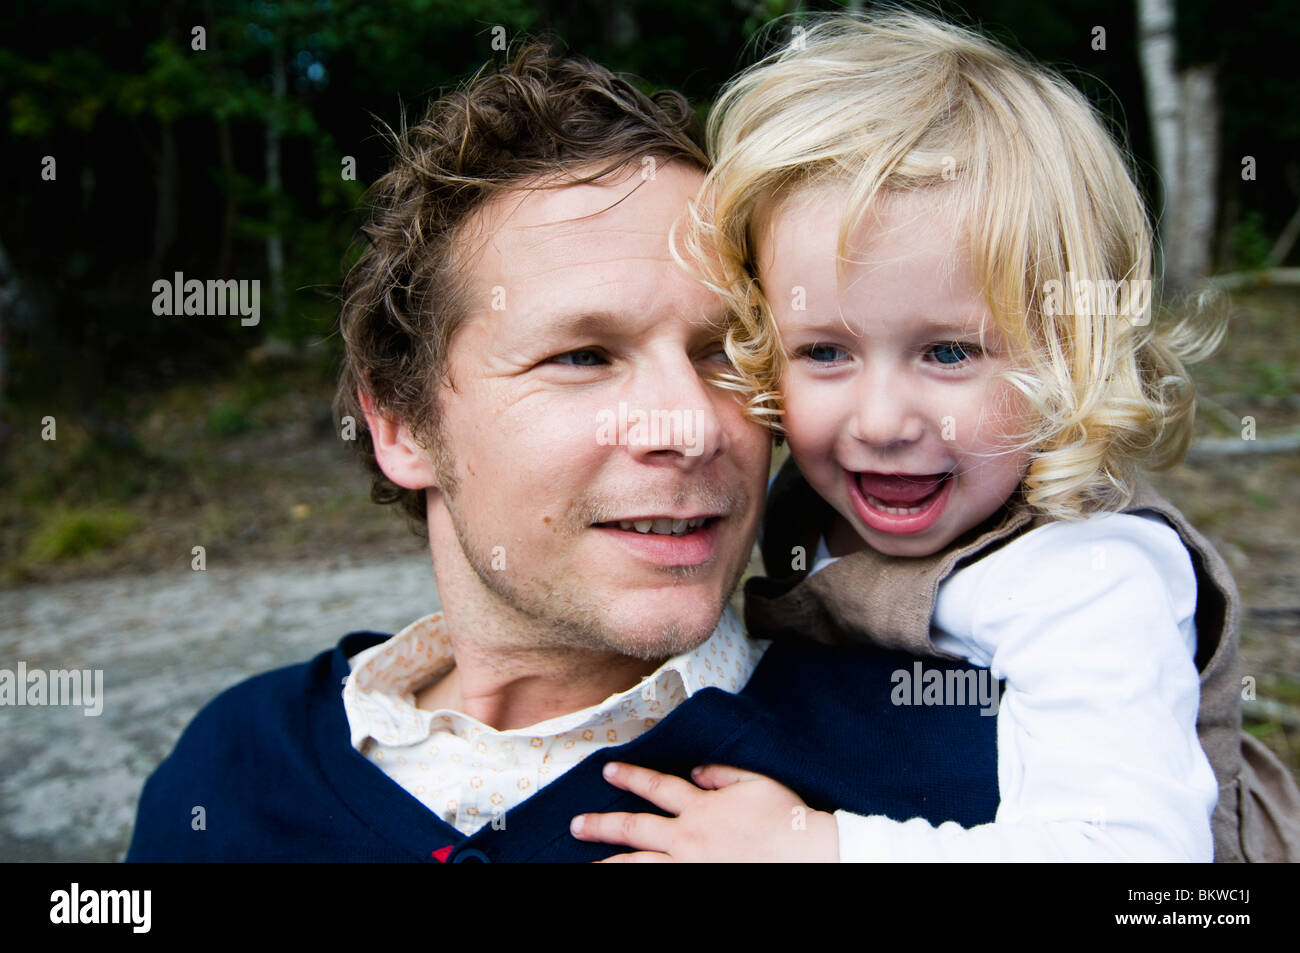 Father and daughter outside - Stock Image